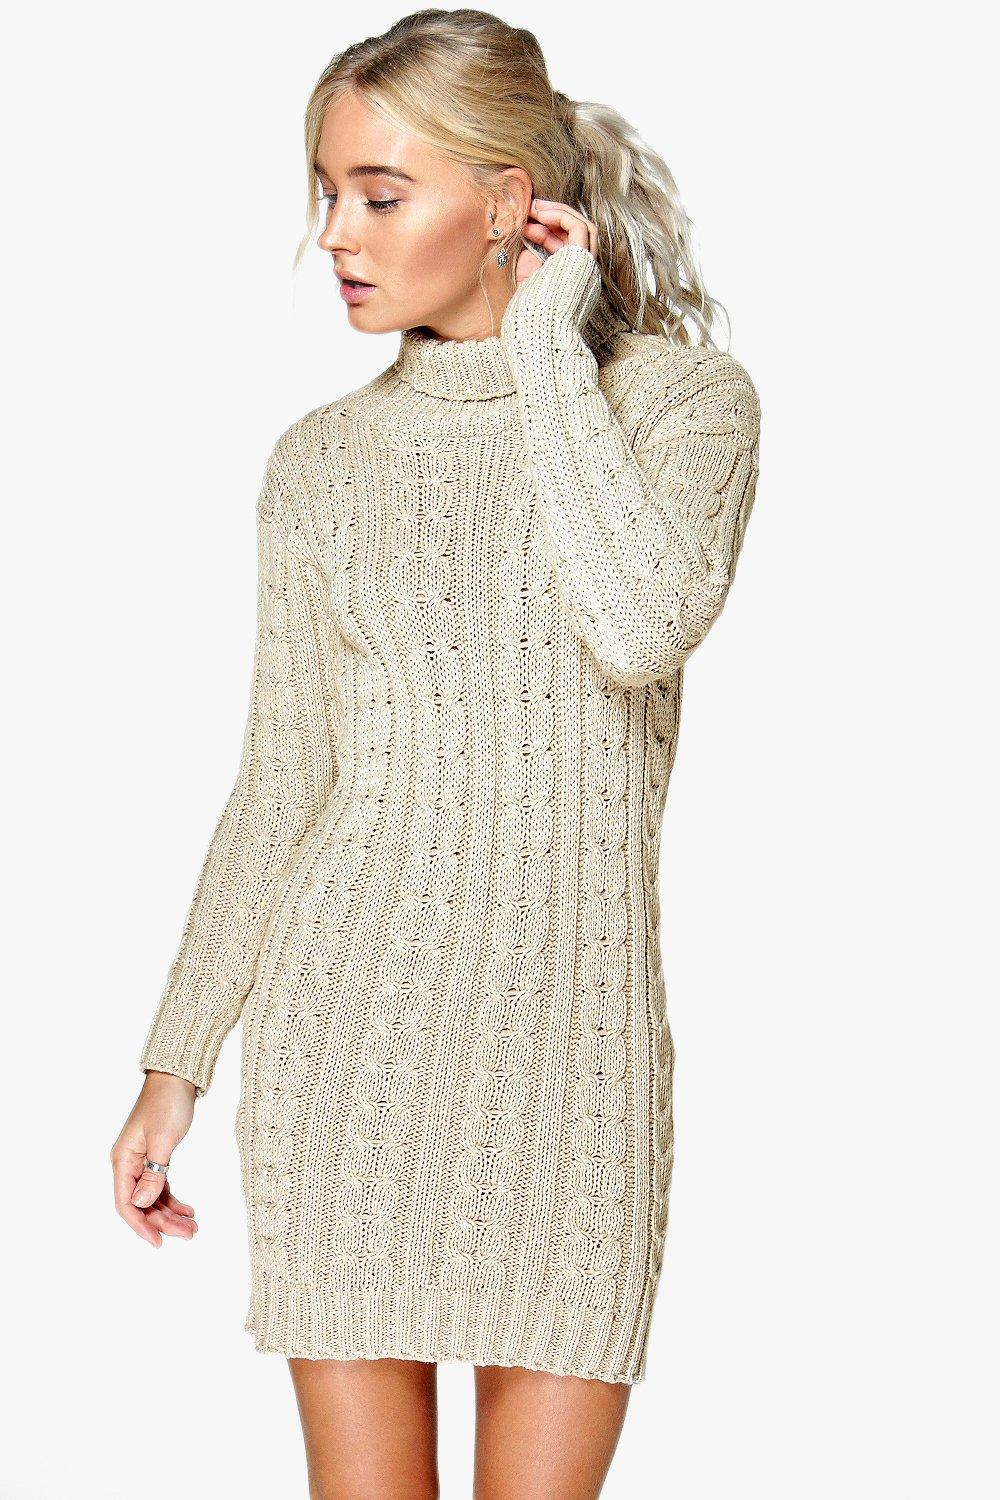 Knitted dresses are THE perfect transitional piece this season - dare to bare those pins you've hidden all winter whilst staying warm in boohoo's collection of oversized jumper dresses featuring slash neck styles, soft knits and roll necks.